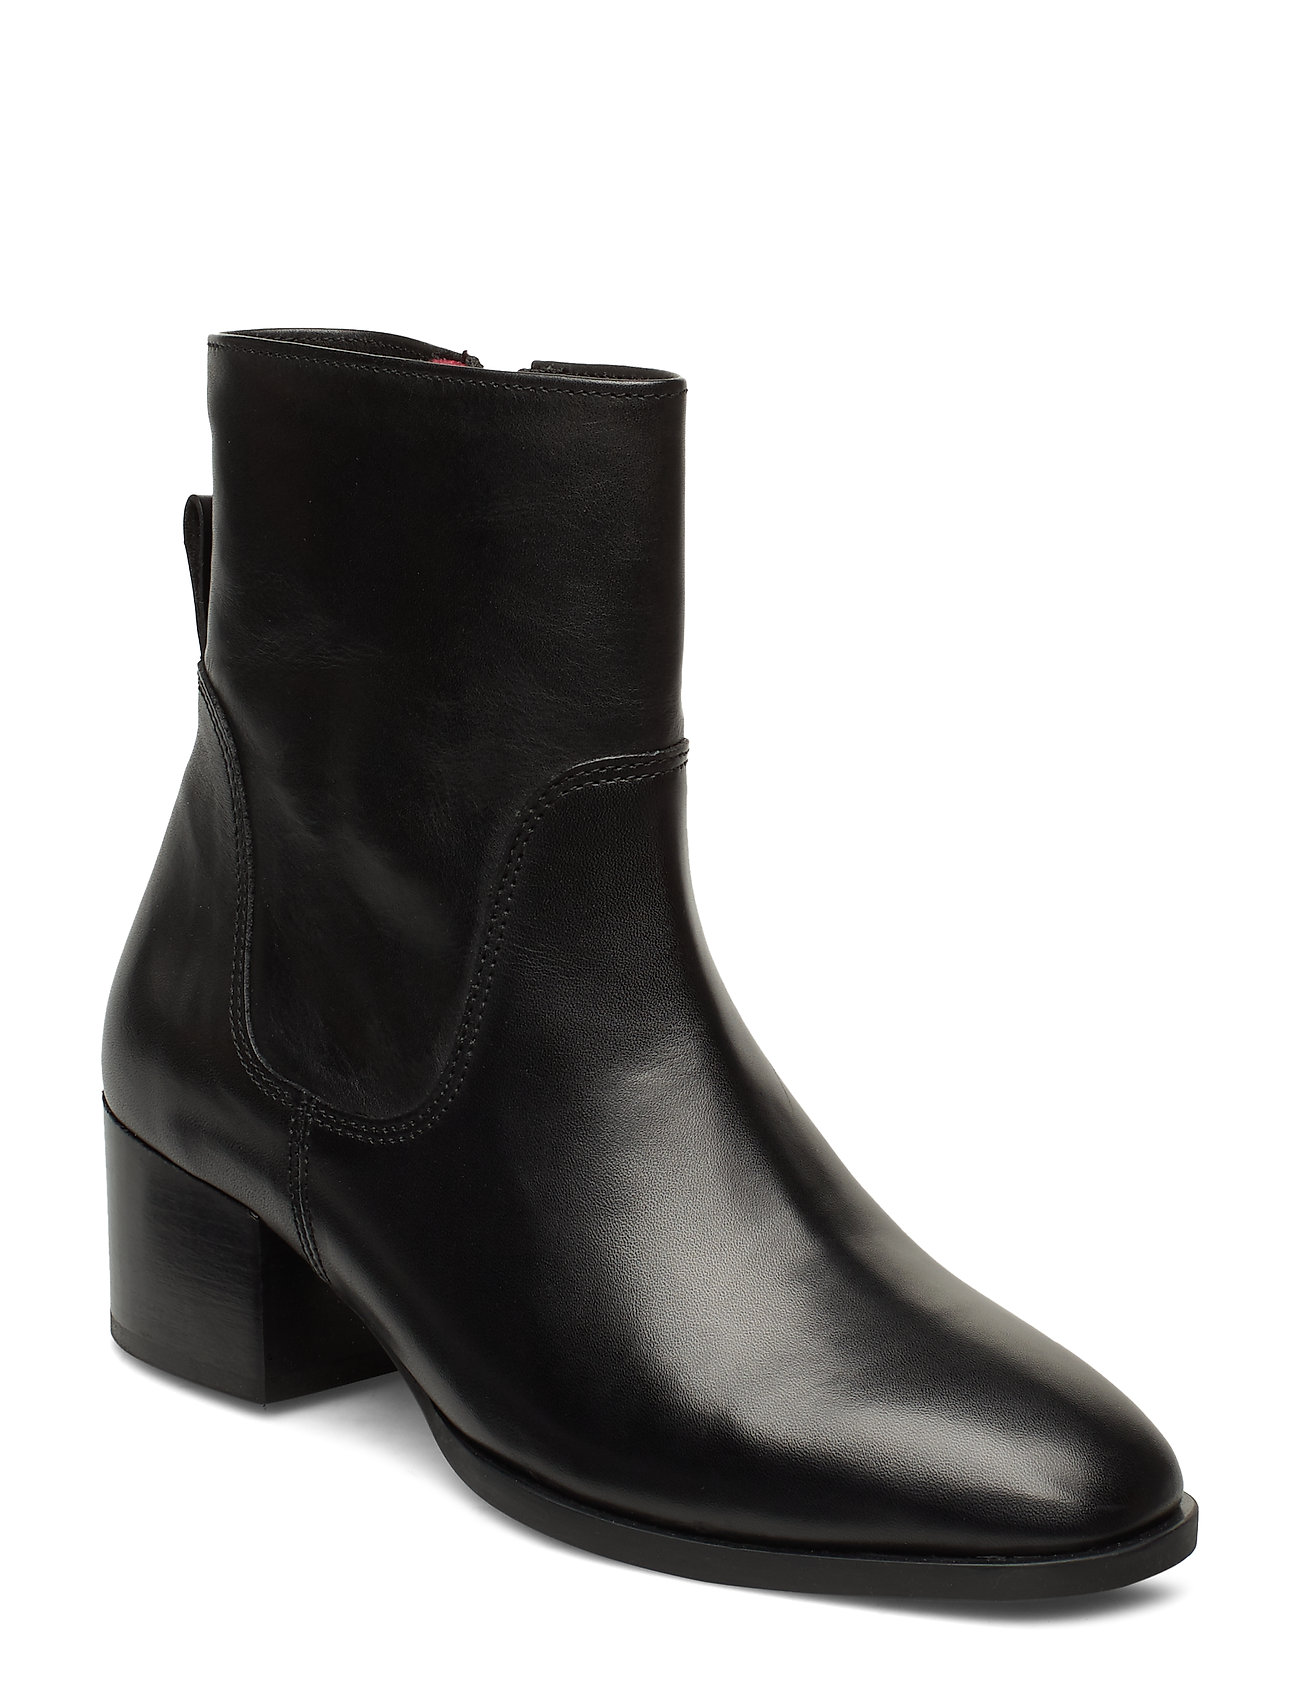 Image of Catania 8b Shoes Boots Ankle Boots Ankle Boot - Heel Sort Marc O'Polo Footwear (3406210321)